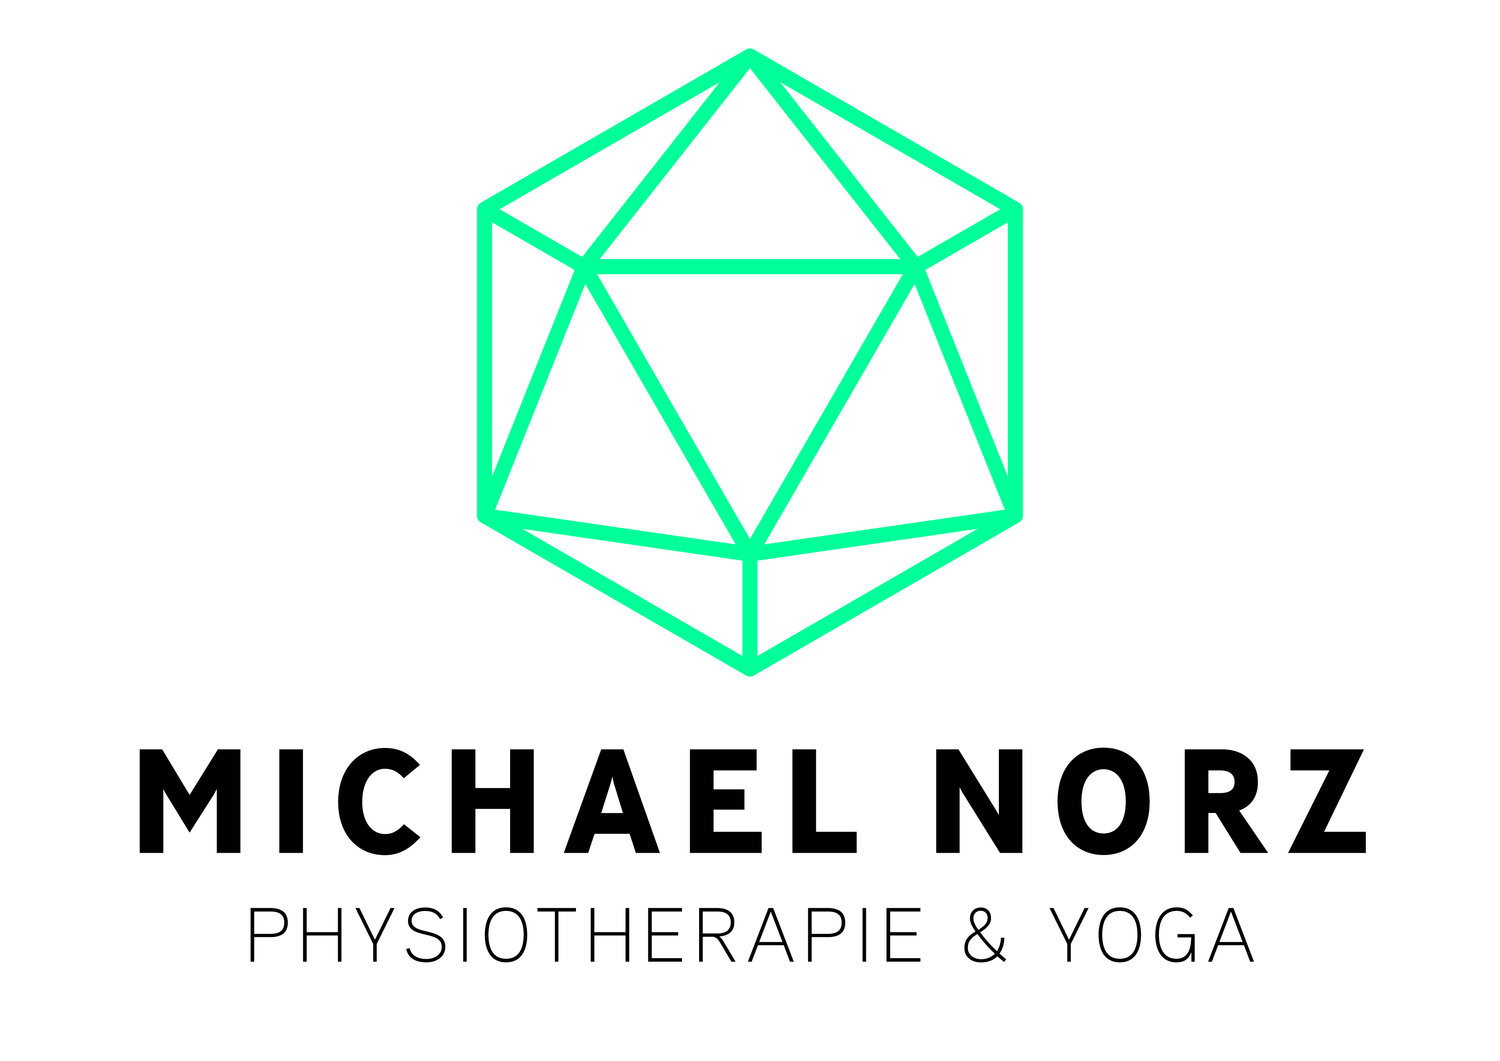 Physiotherapie & Yoga